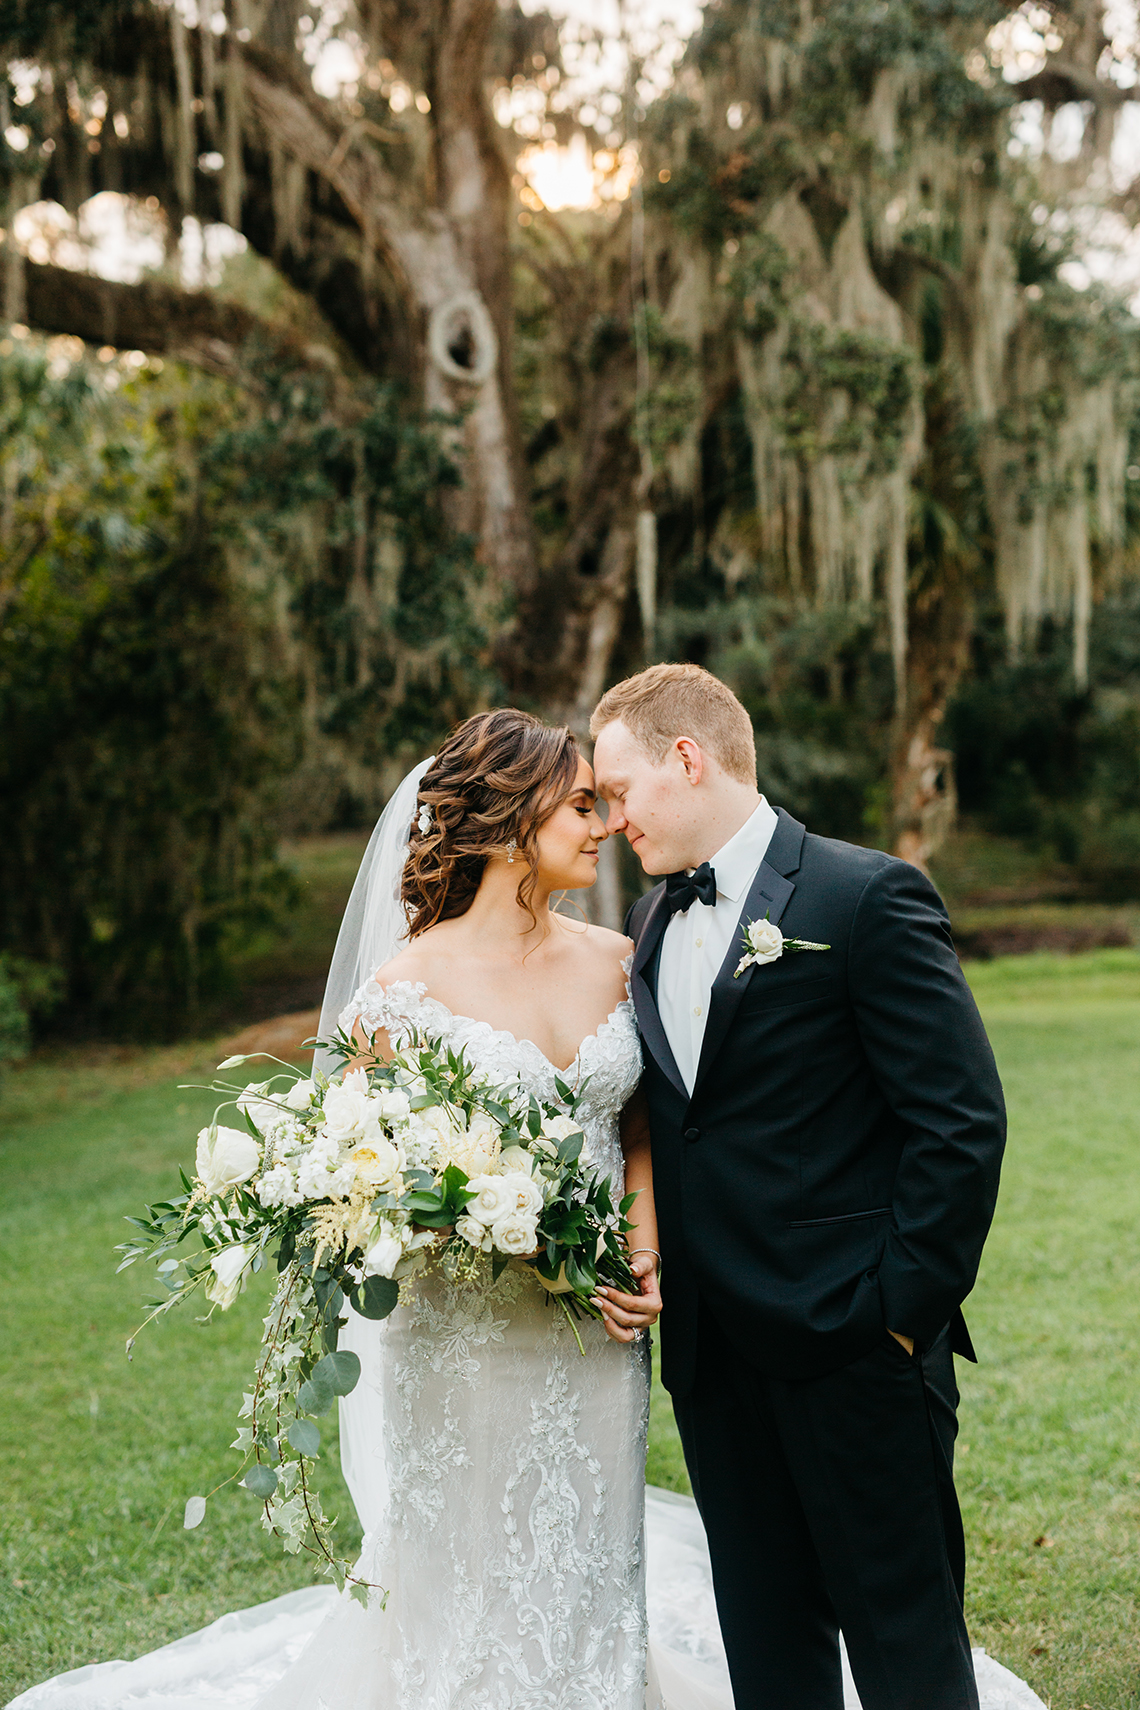 Magical Intimate Southern Wedding Under The Oak Trees – Pure Luxe Bride – Lydia Ruth Photography 48